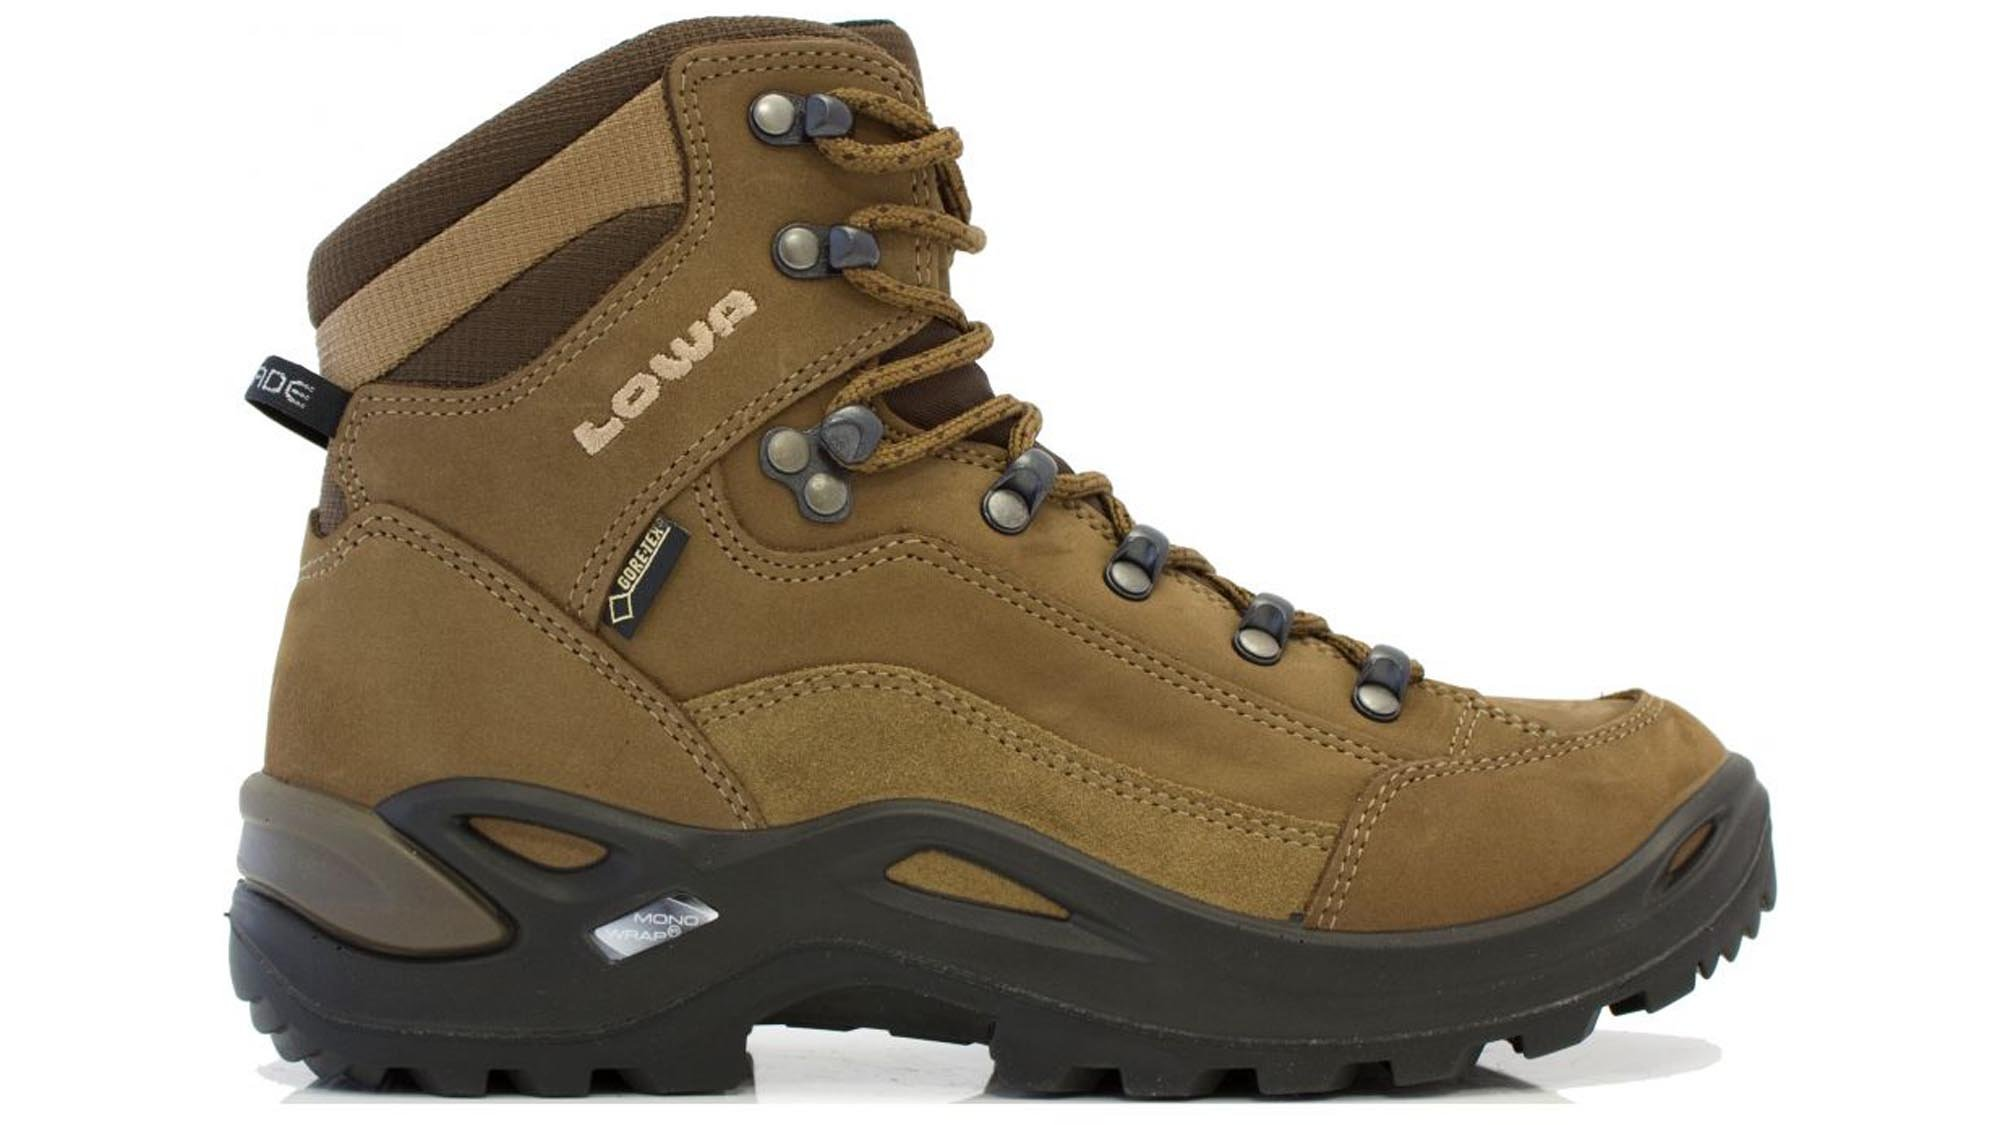 e37d284766ef5 Best hiking boots 2019: Walking boots for men and women from £38 ...